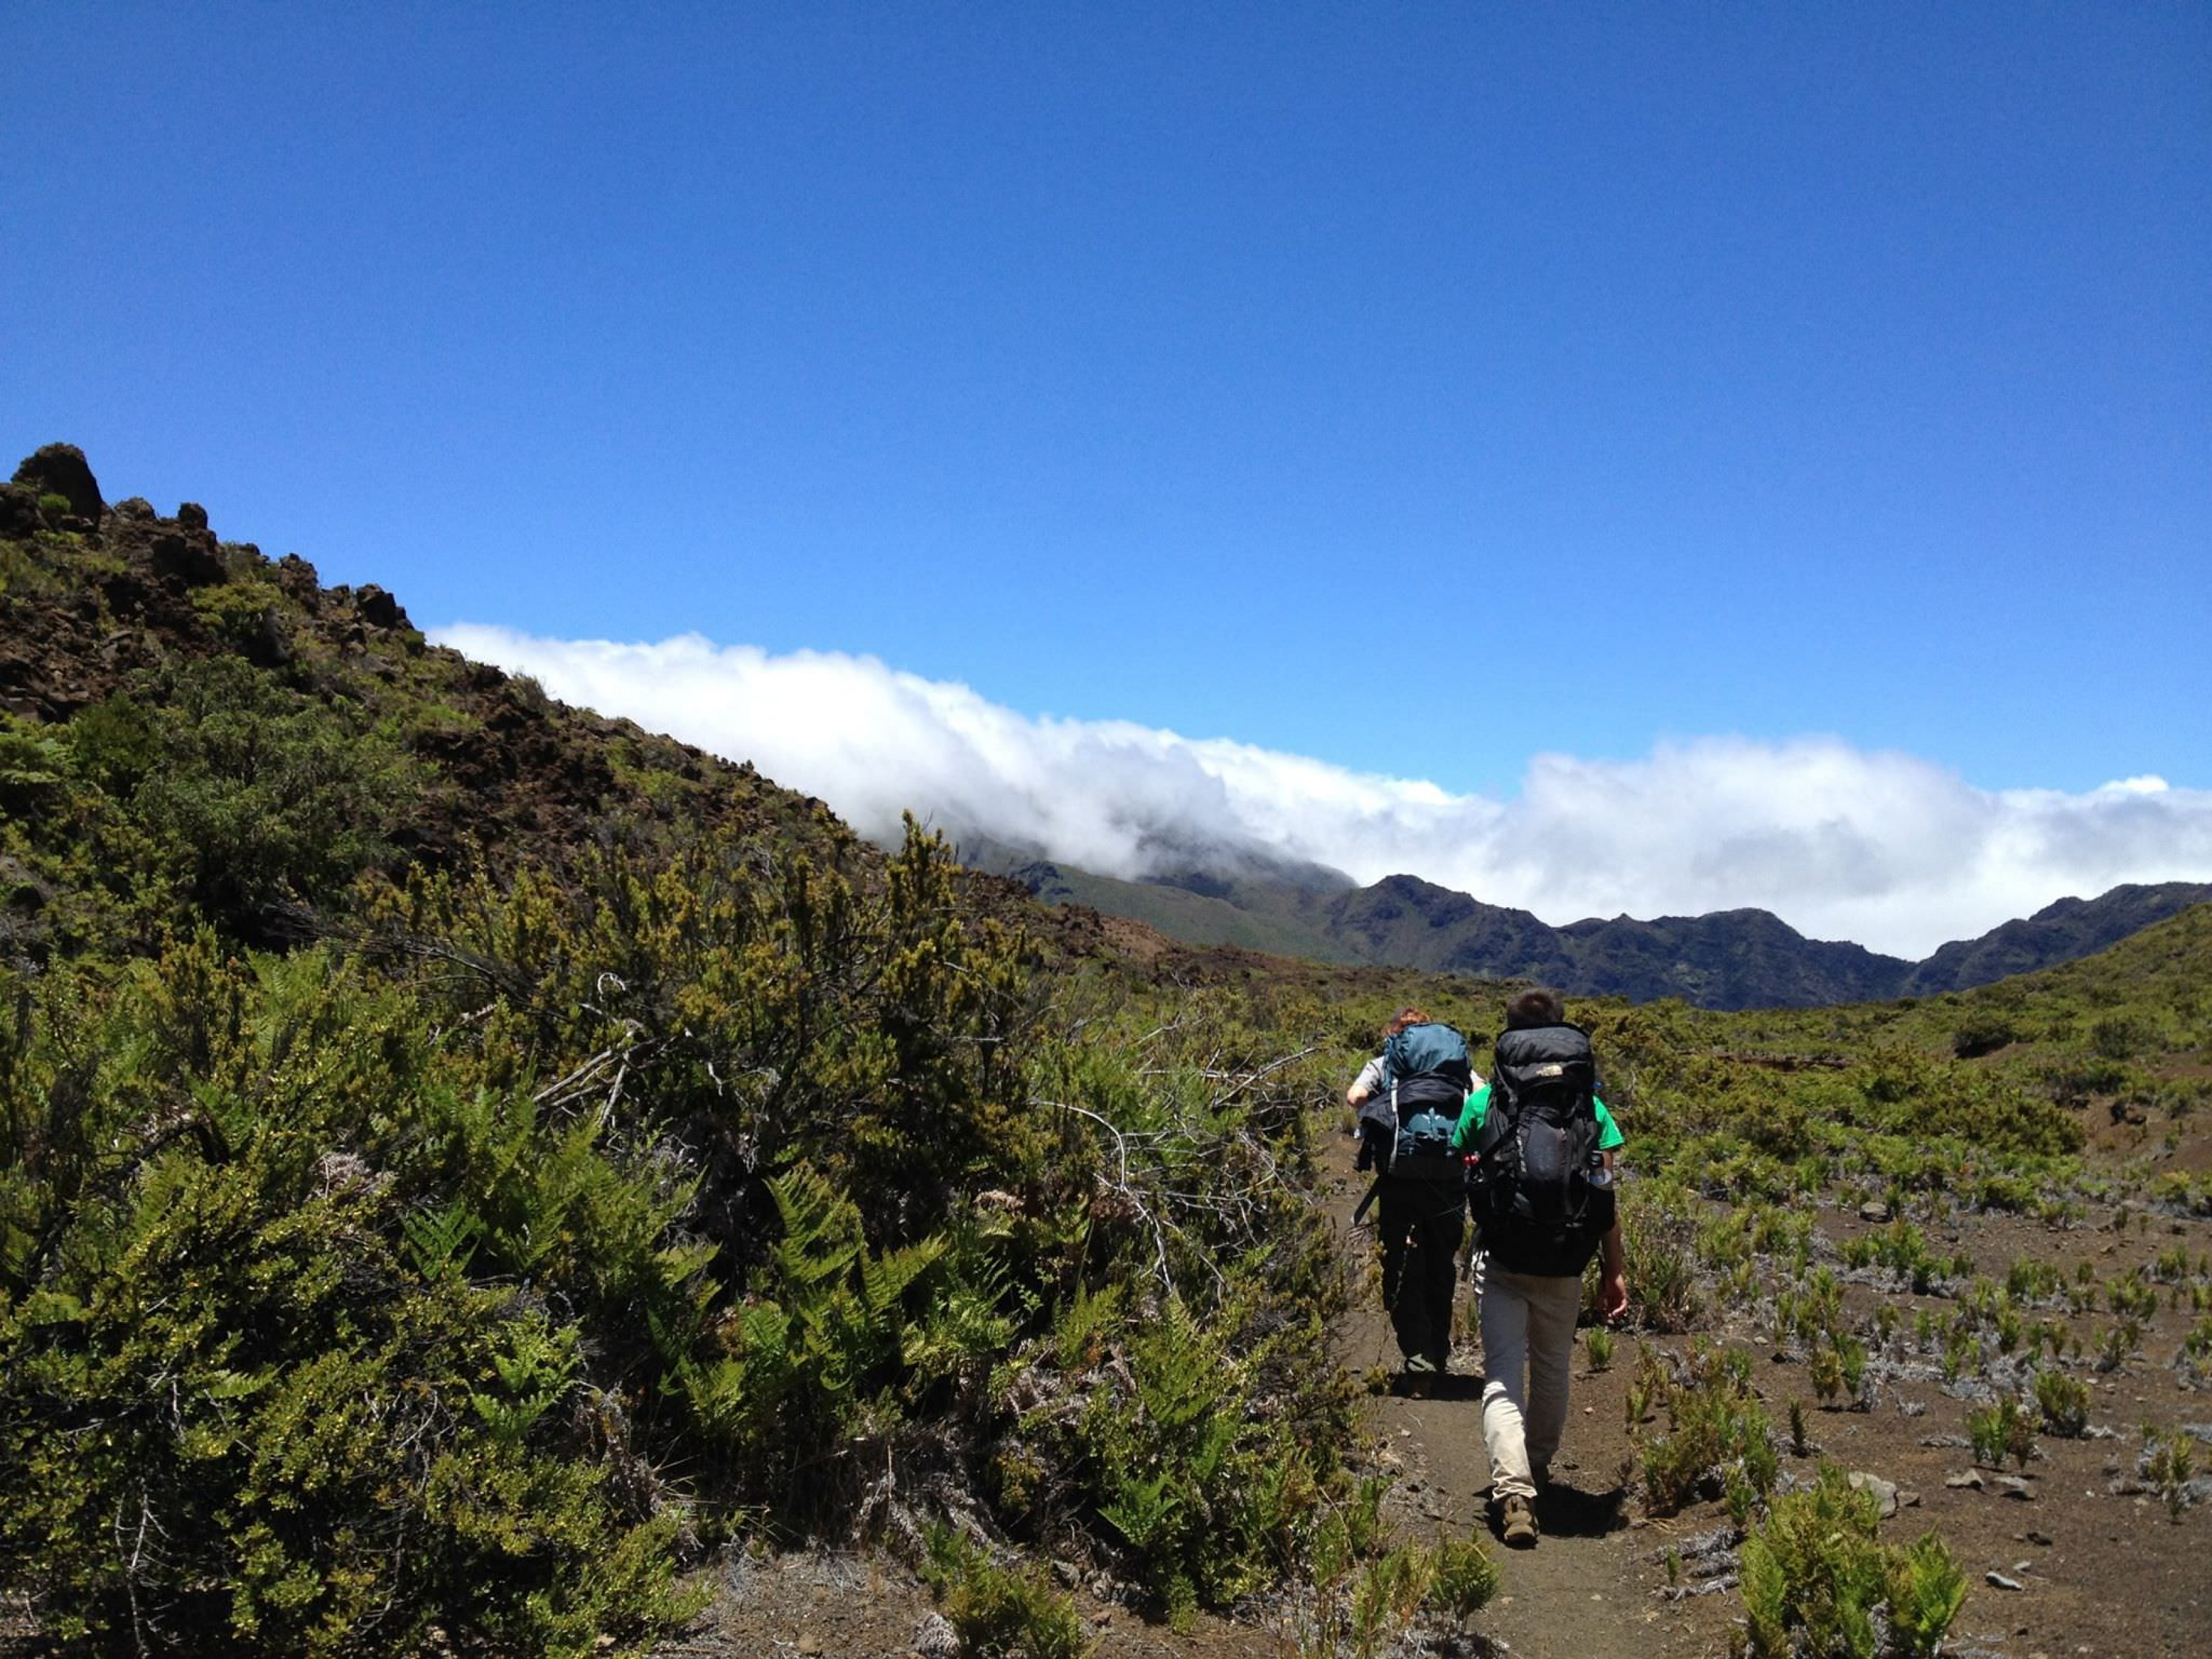 Backpackers head through Haleakala National Park.